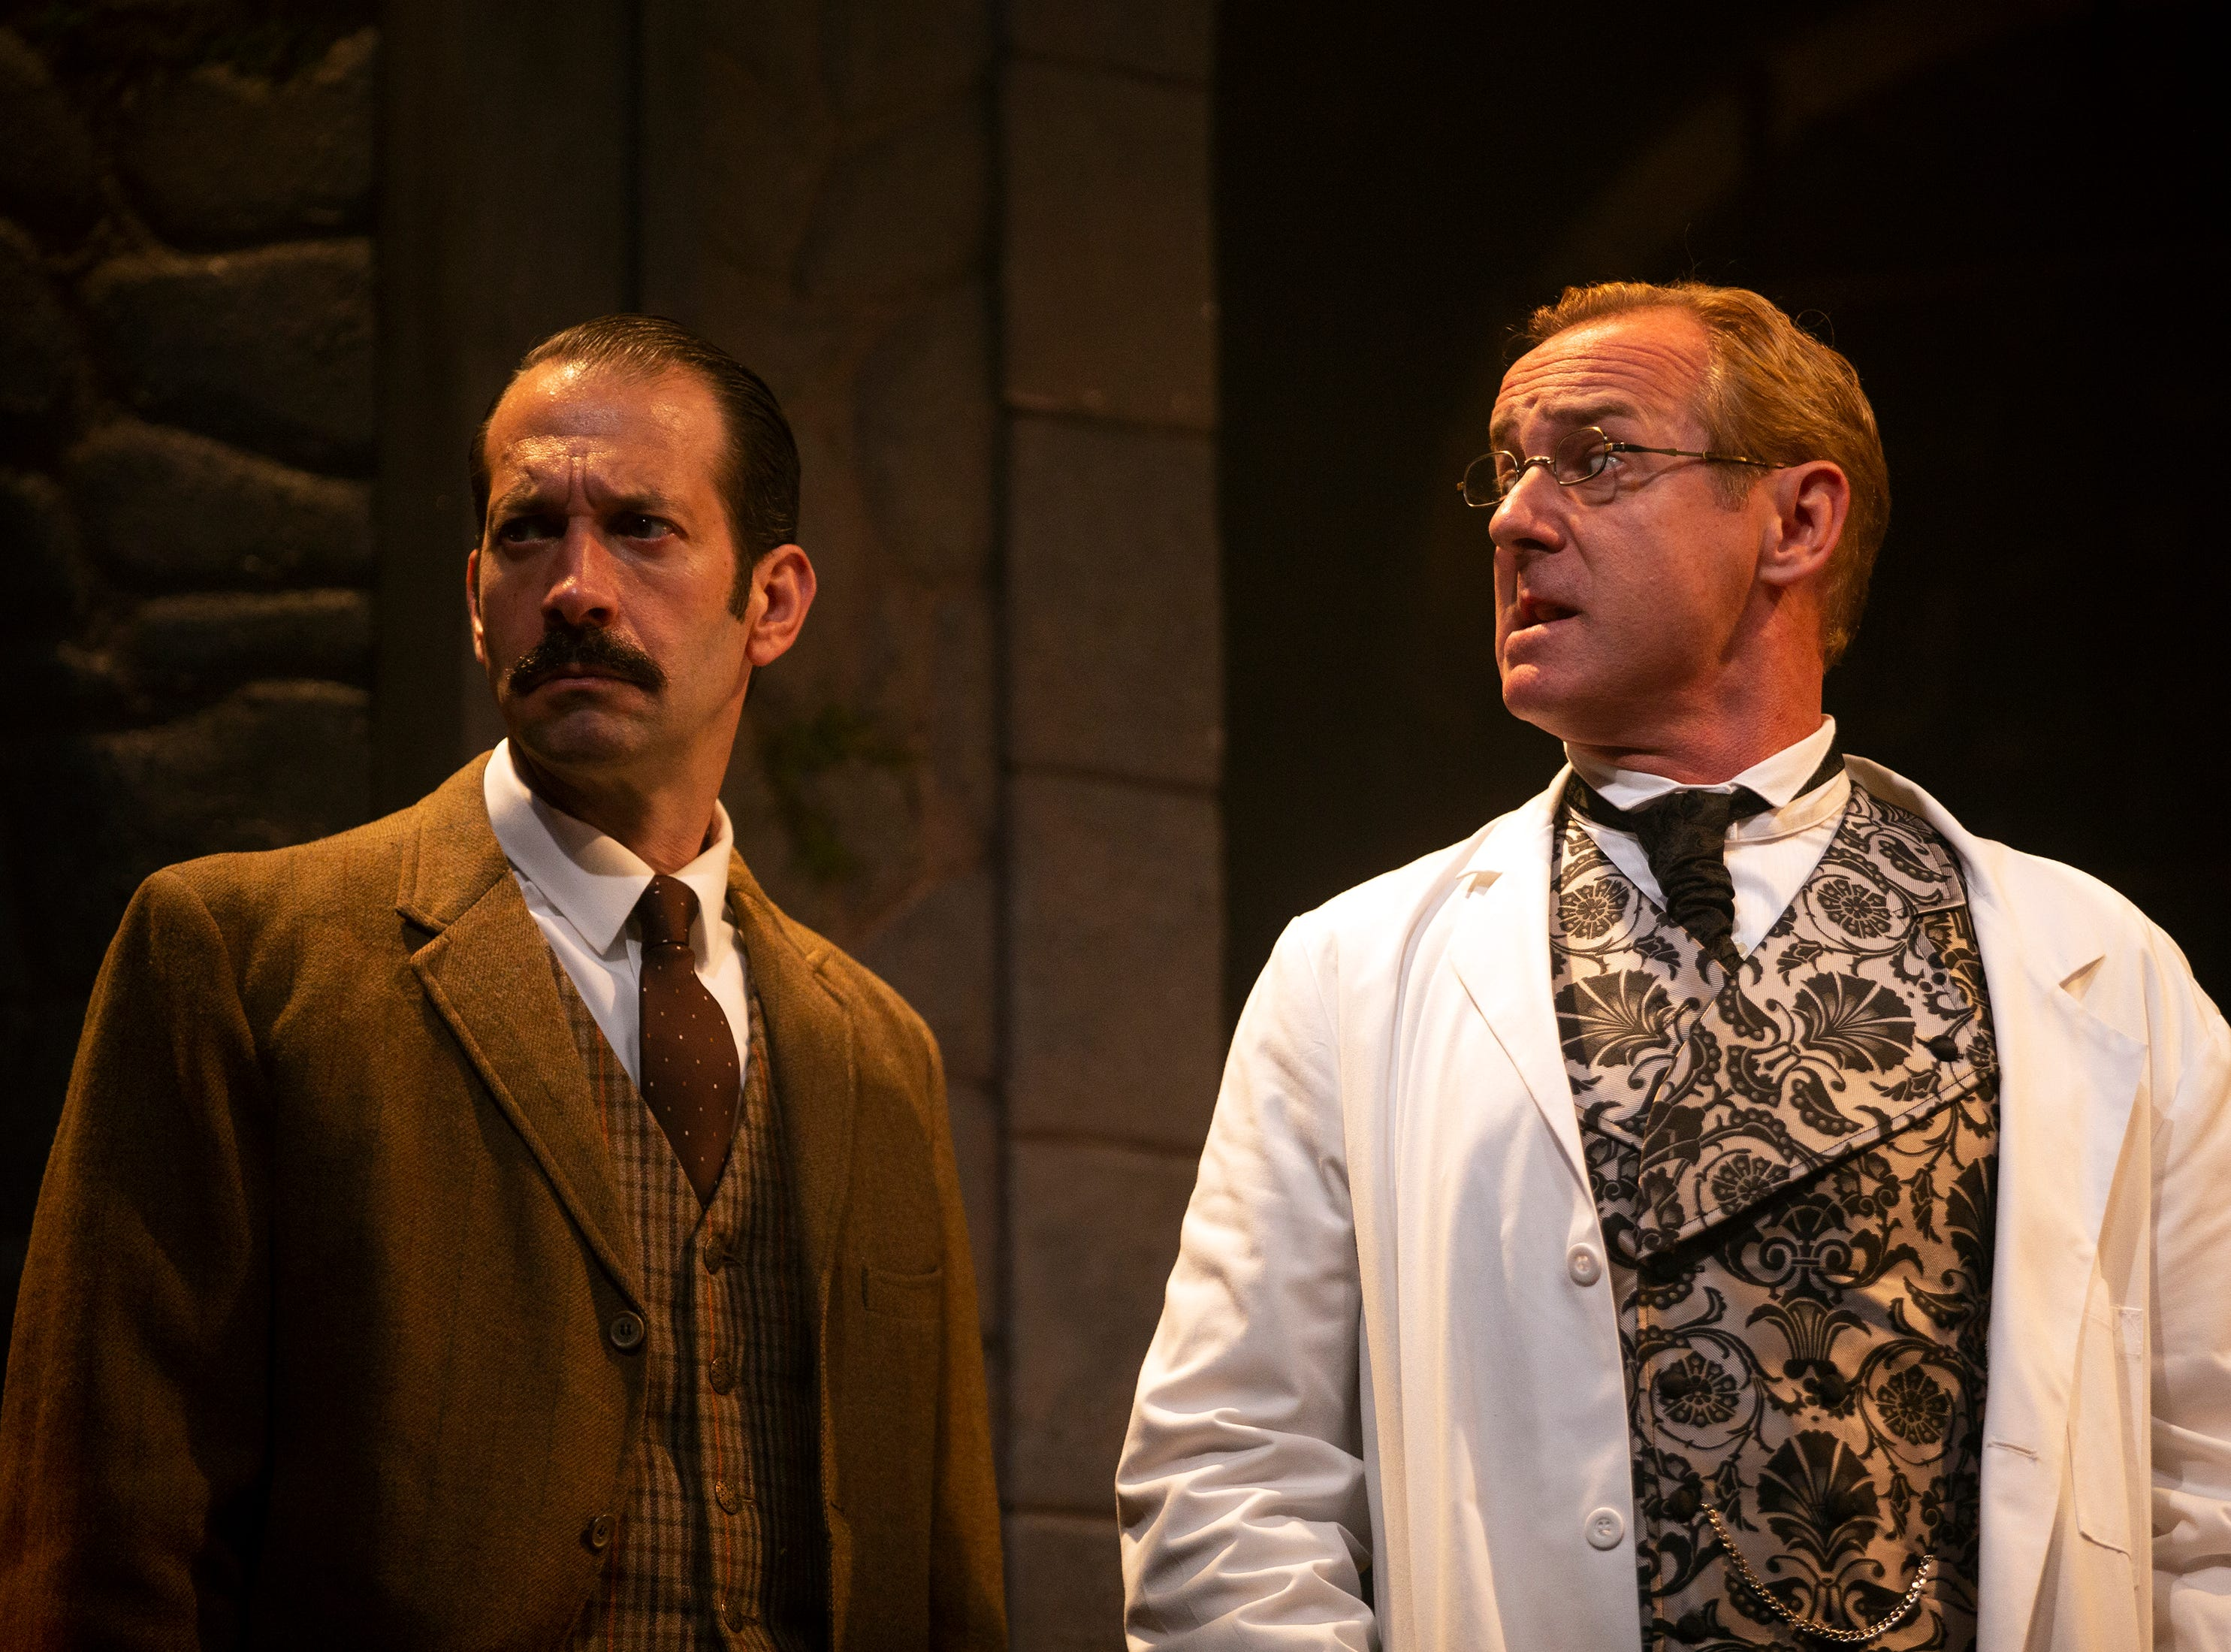 Jeffrey Binder and David Whalen act in a scene from 'Holmes and Watson', Tuesday, March 19, 2019, at the Gulfshore Playhouse in Naples.